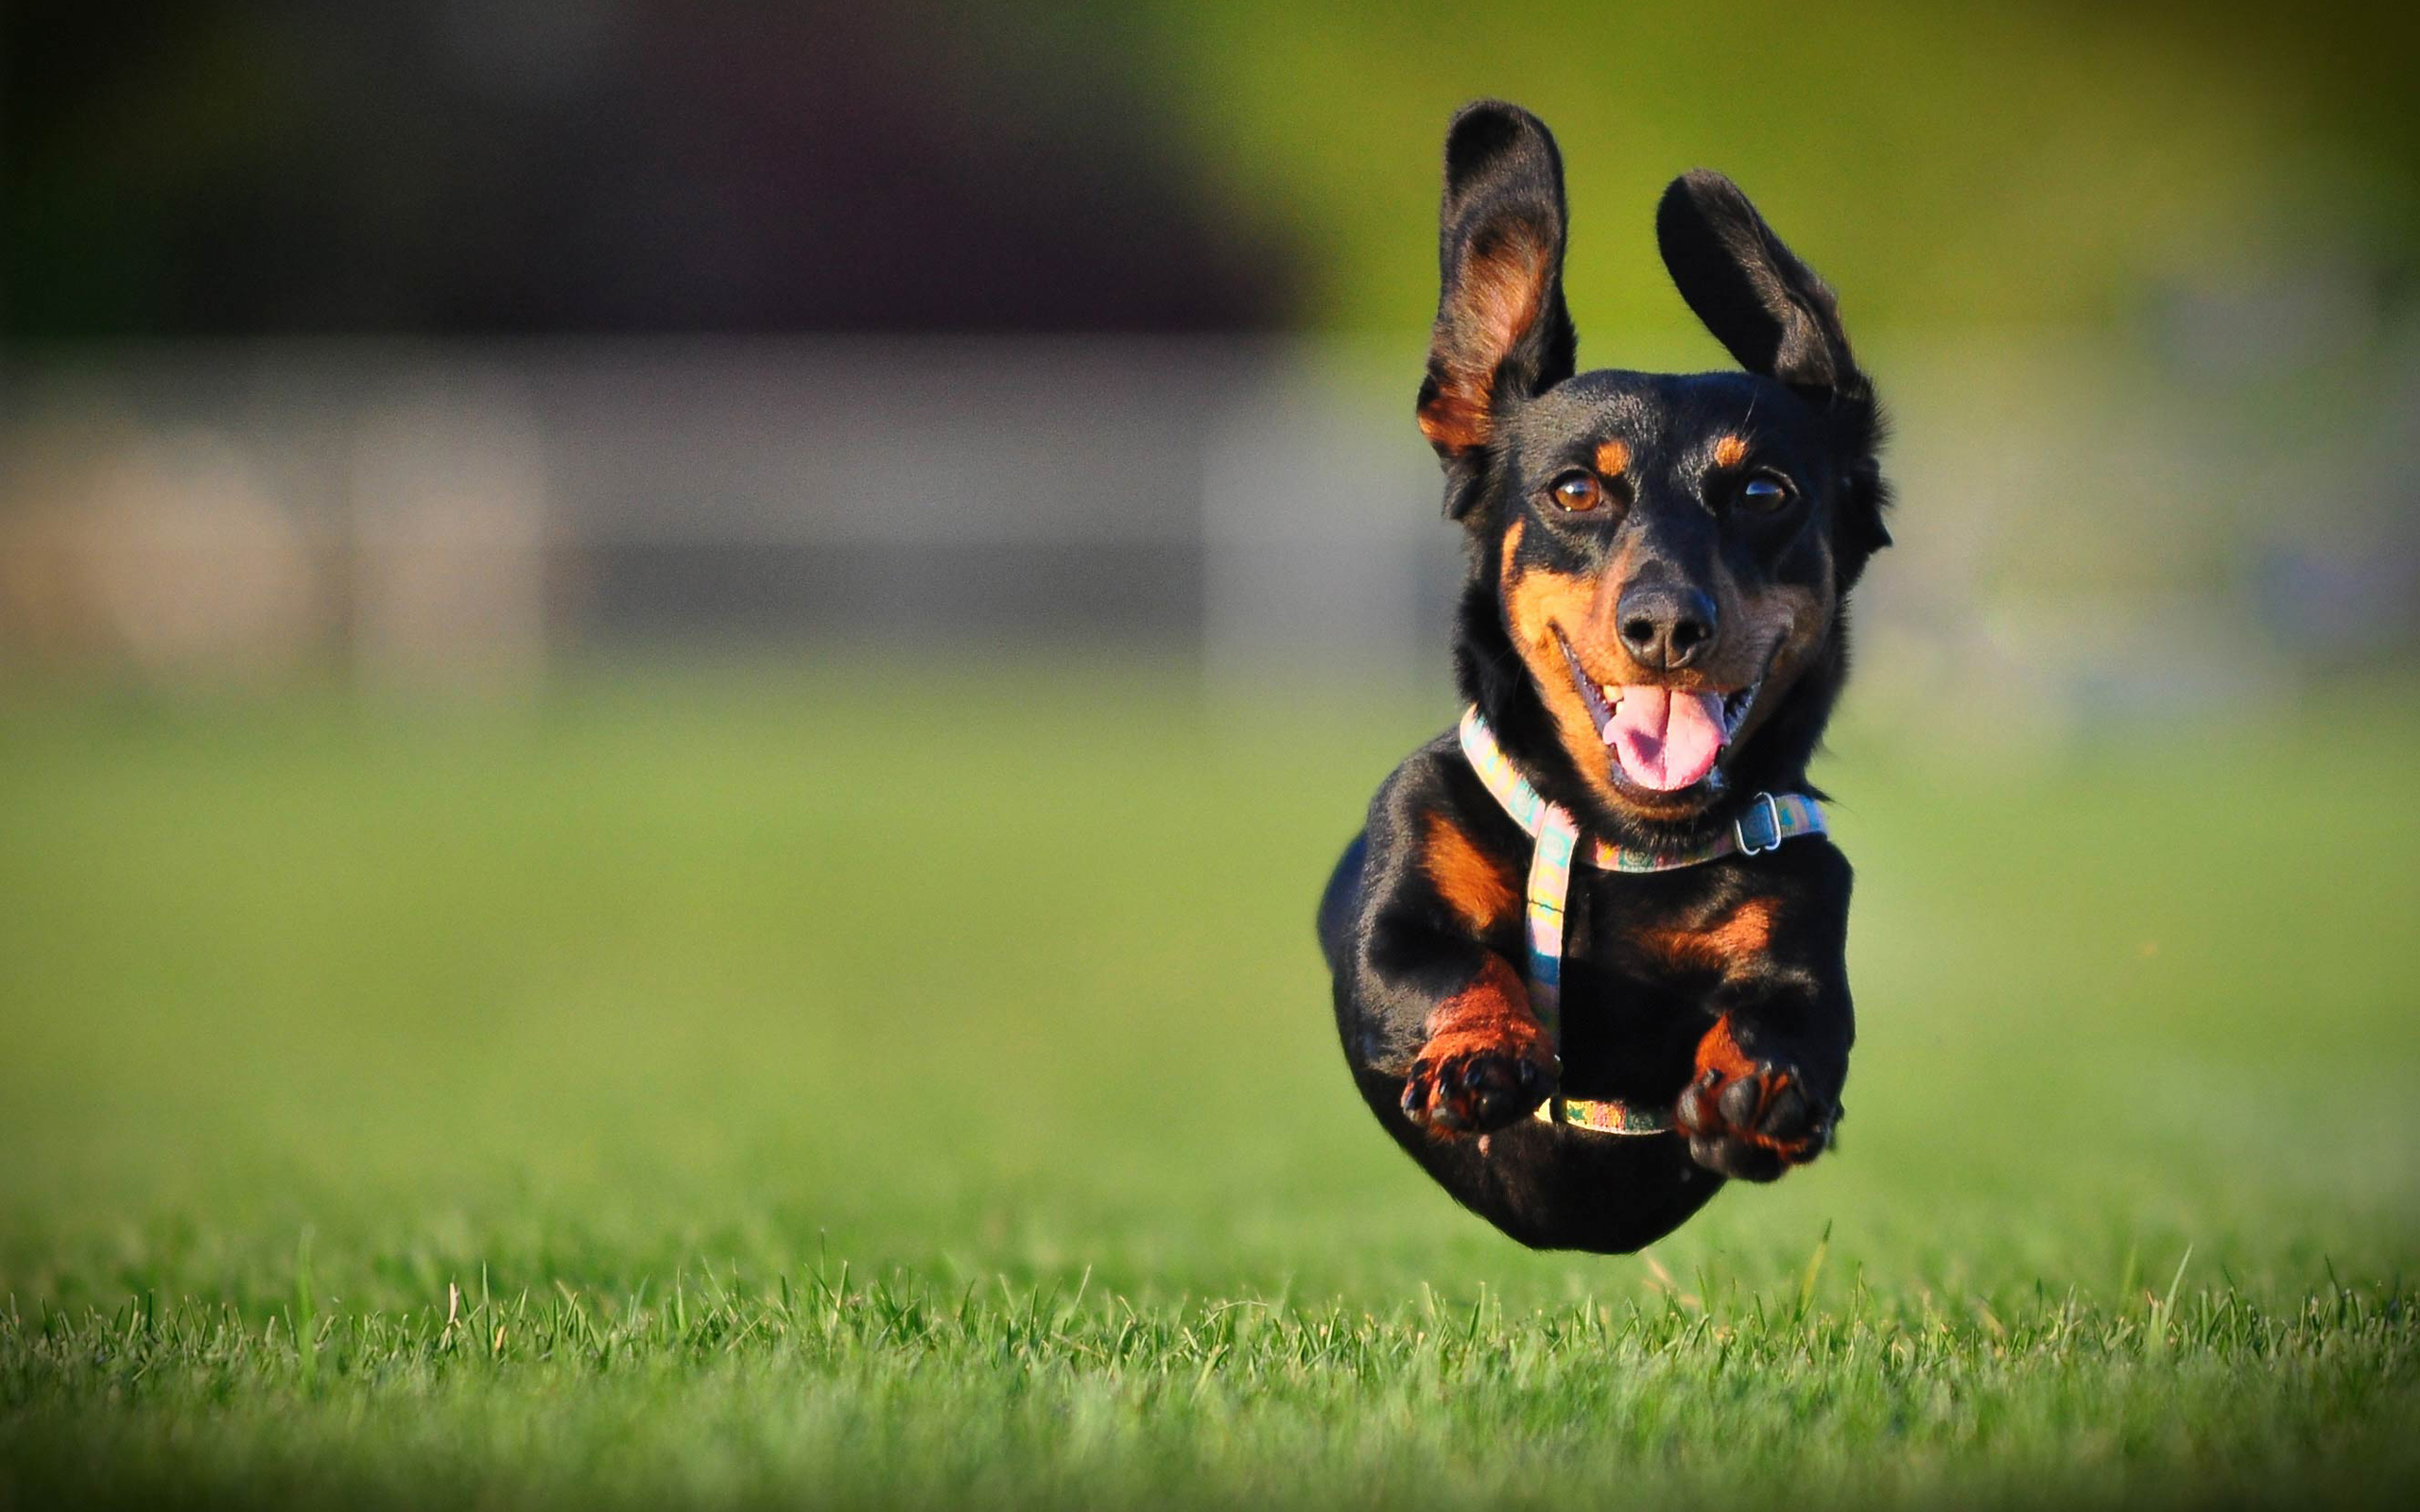 Dachshund Dog Jumps On Grass